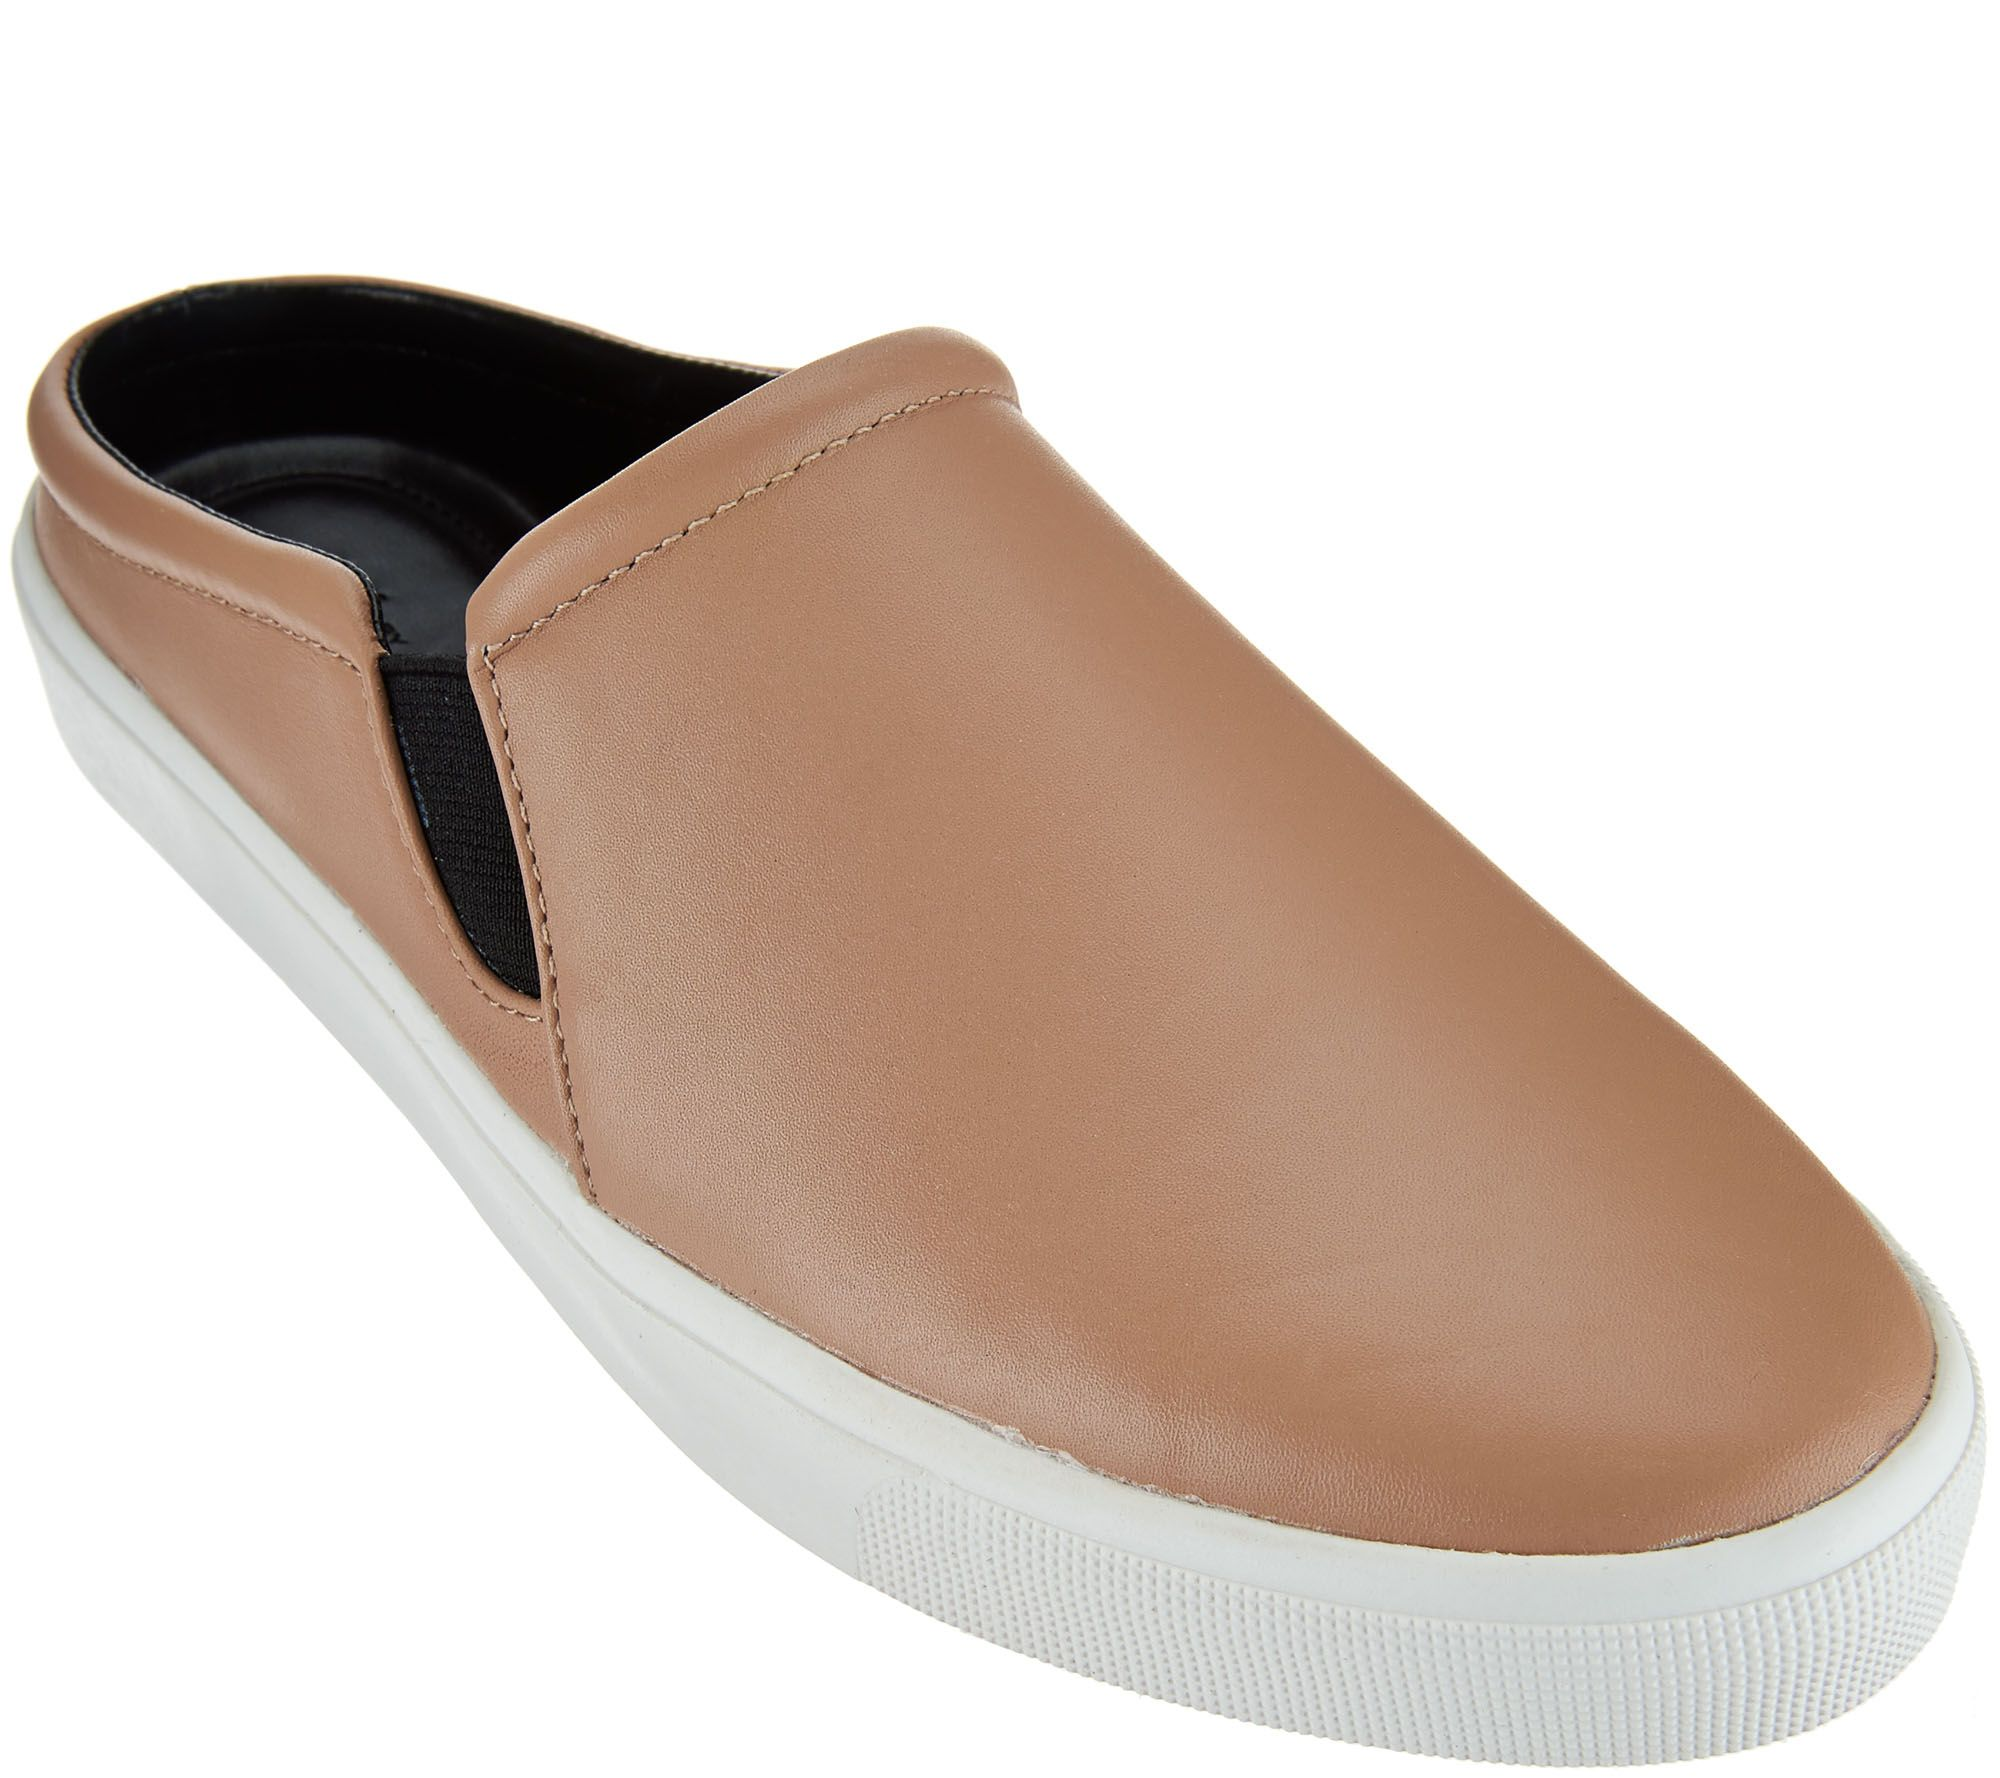 H by halston shoes qvc h by halston leather slide on shoes ellie a273967 nvjuhfo Image collections